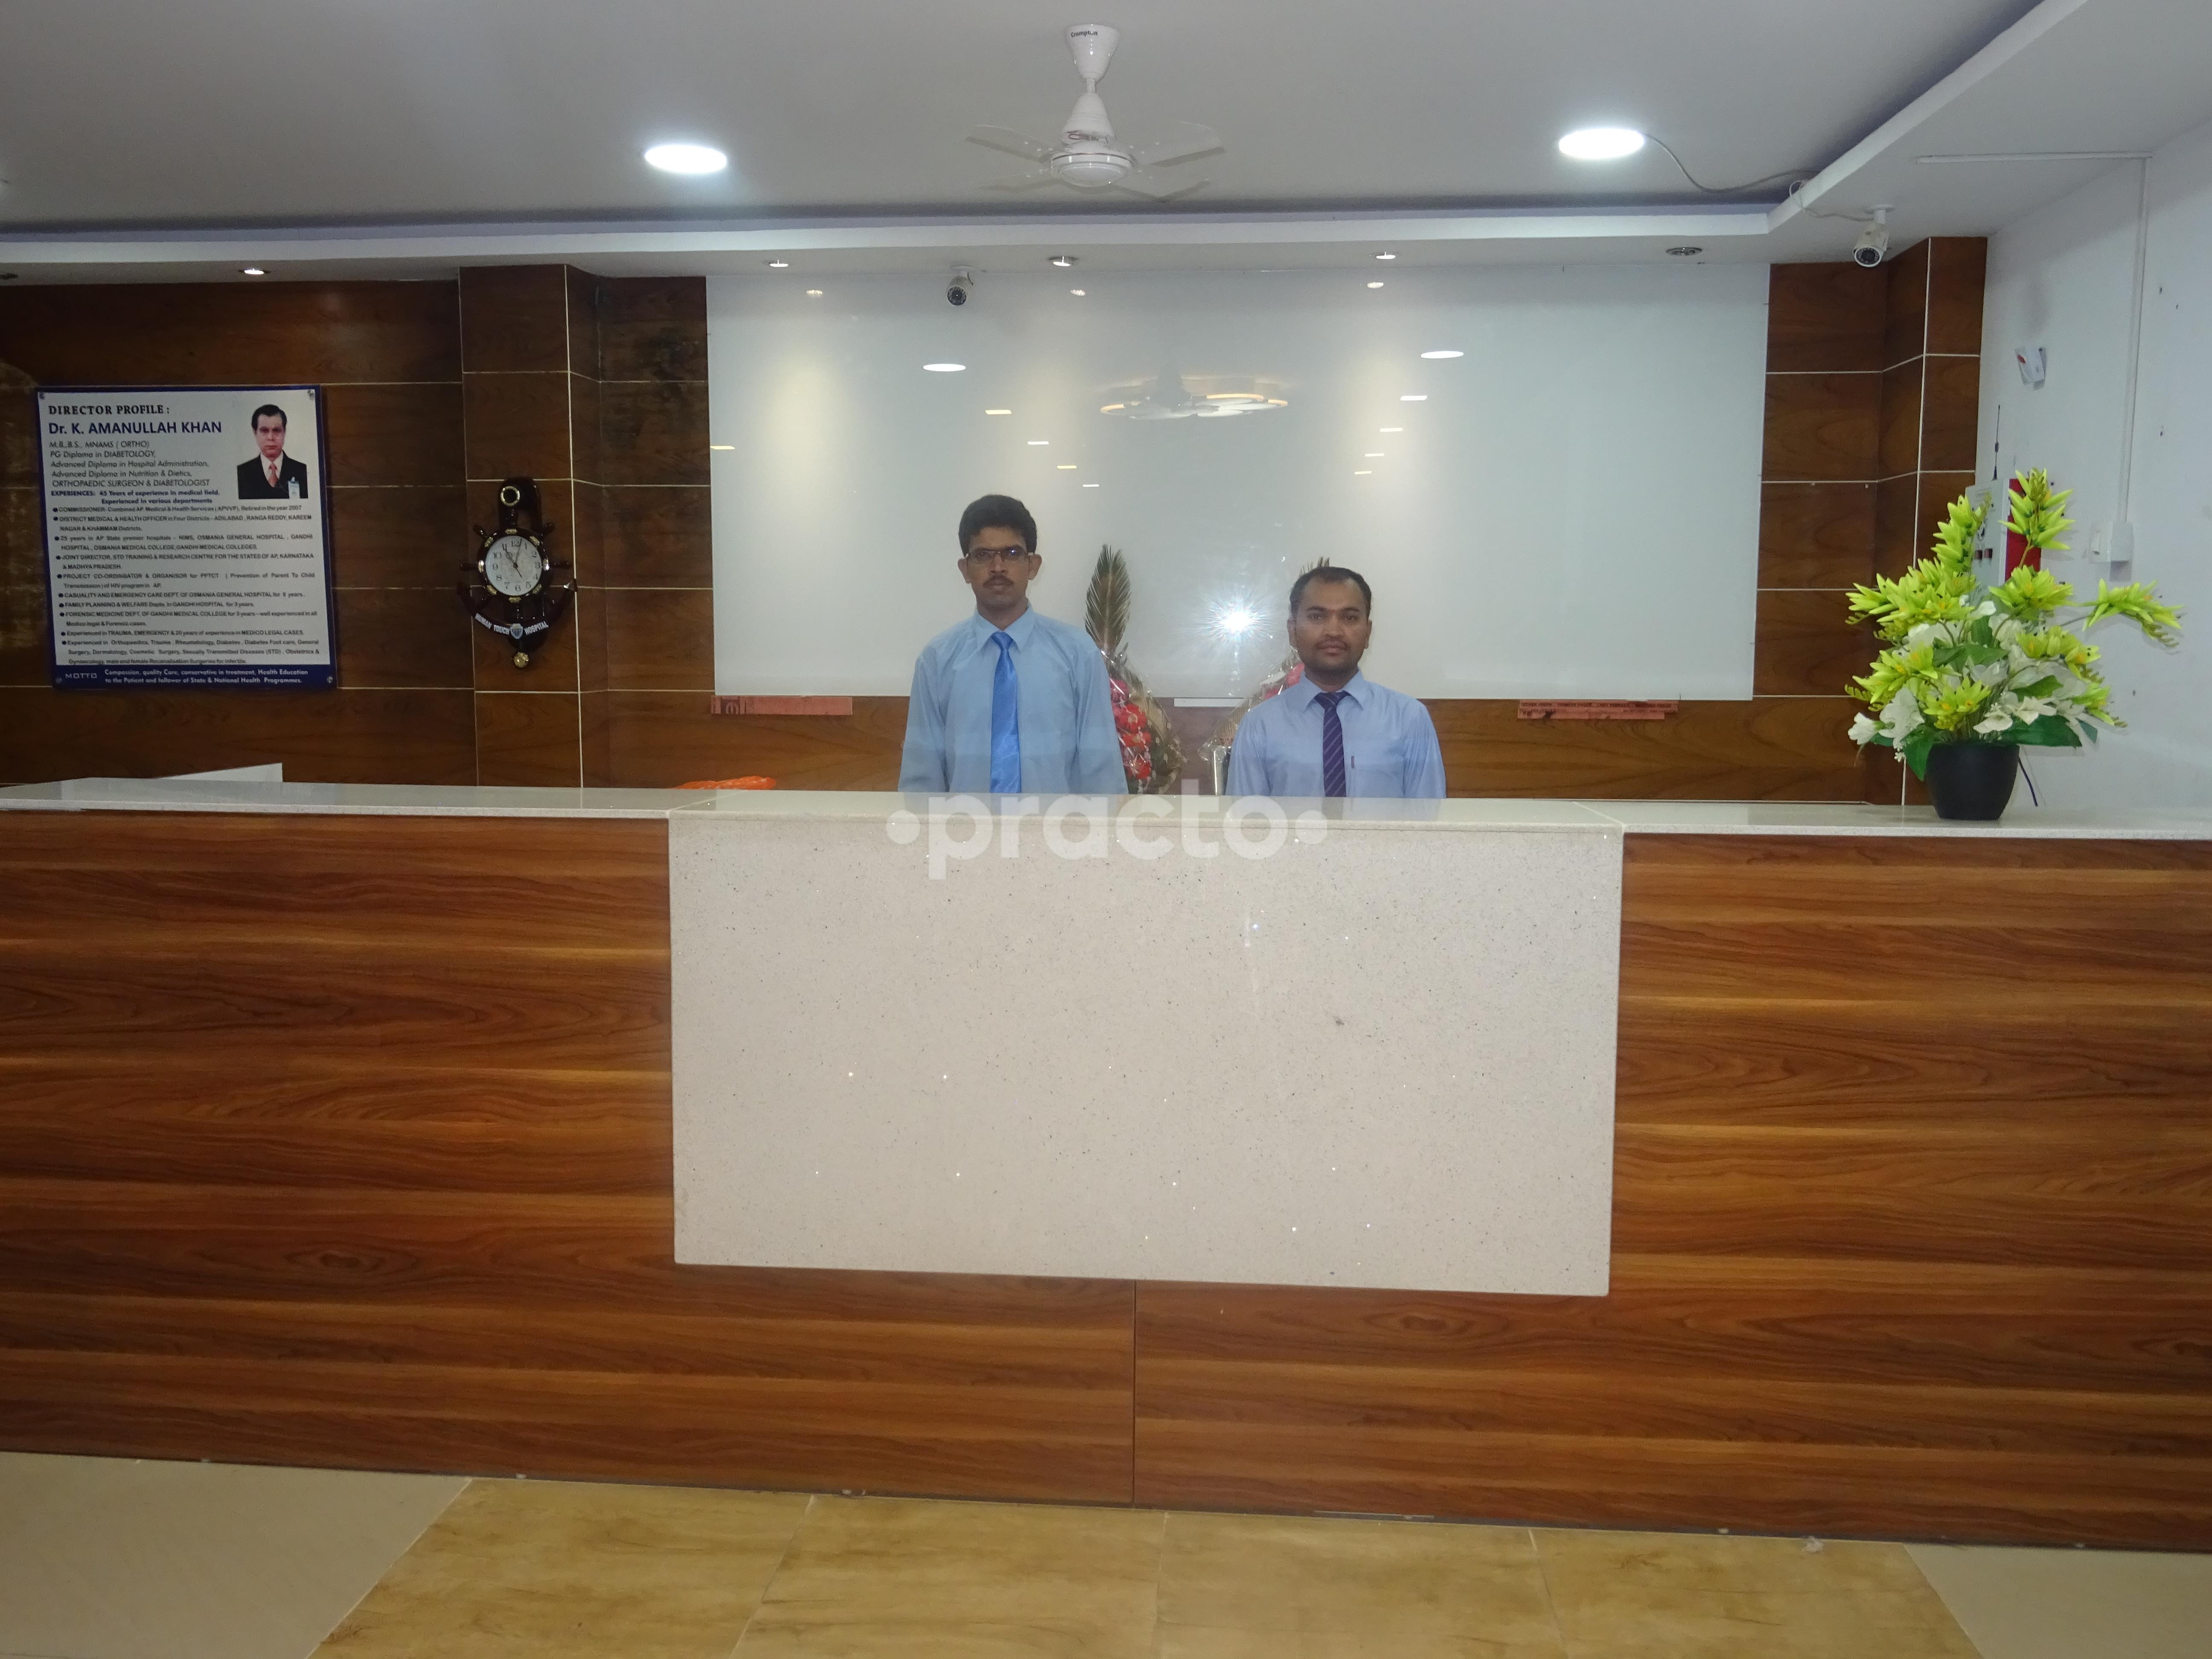 maxcare hardwood flooring reviews of best multi speciality clinics in hyderabad book appointment view regarding best multi speciality clinics in hyderabad book appointment view reviews address timings practo